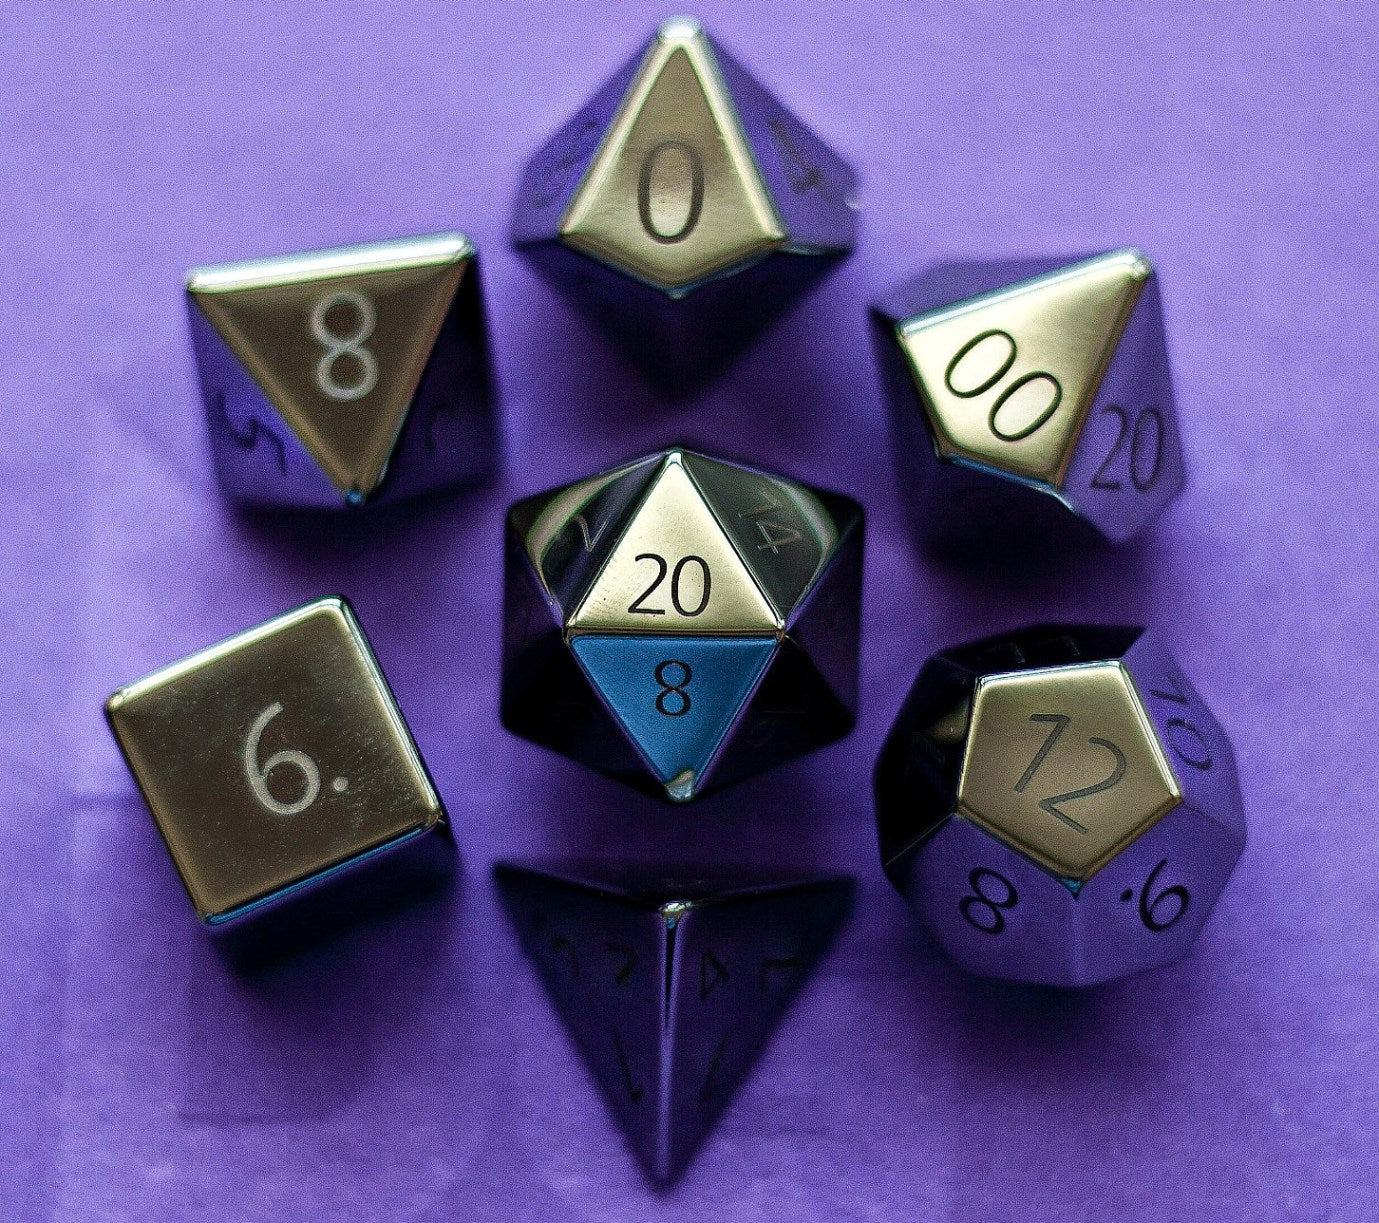 Metallic Dice Games - Engraved Hematite: Full-Sized 16mm Polyhedral Dice Set | Sunny Pair'O'Dice